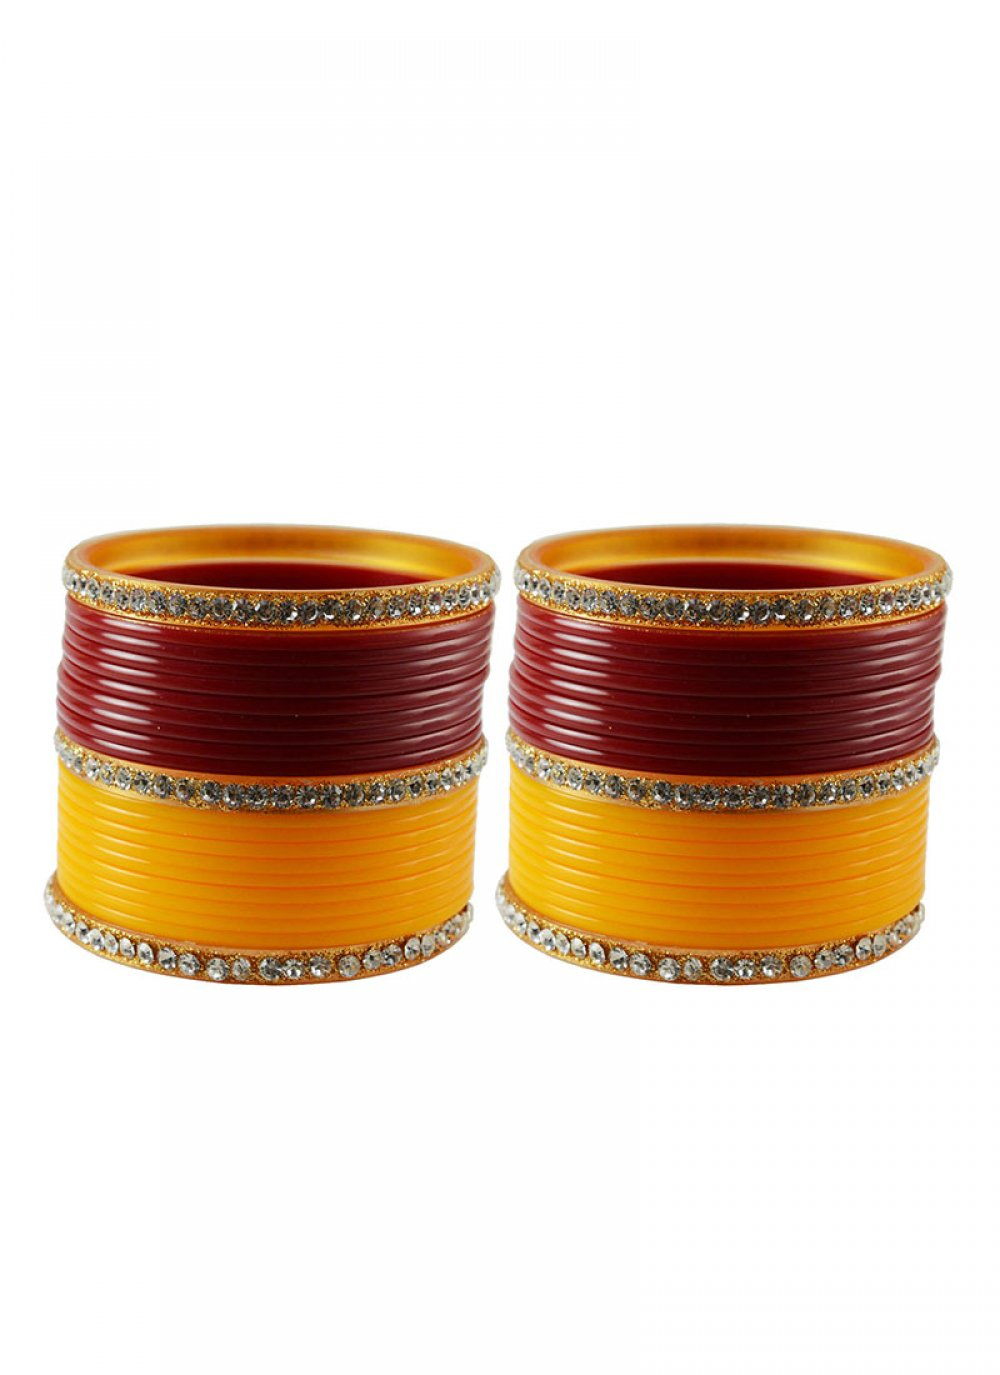 Bangles Stone Work in Orange and Red